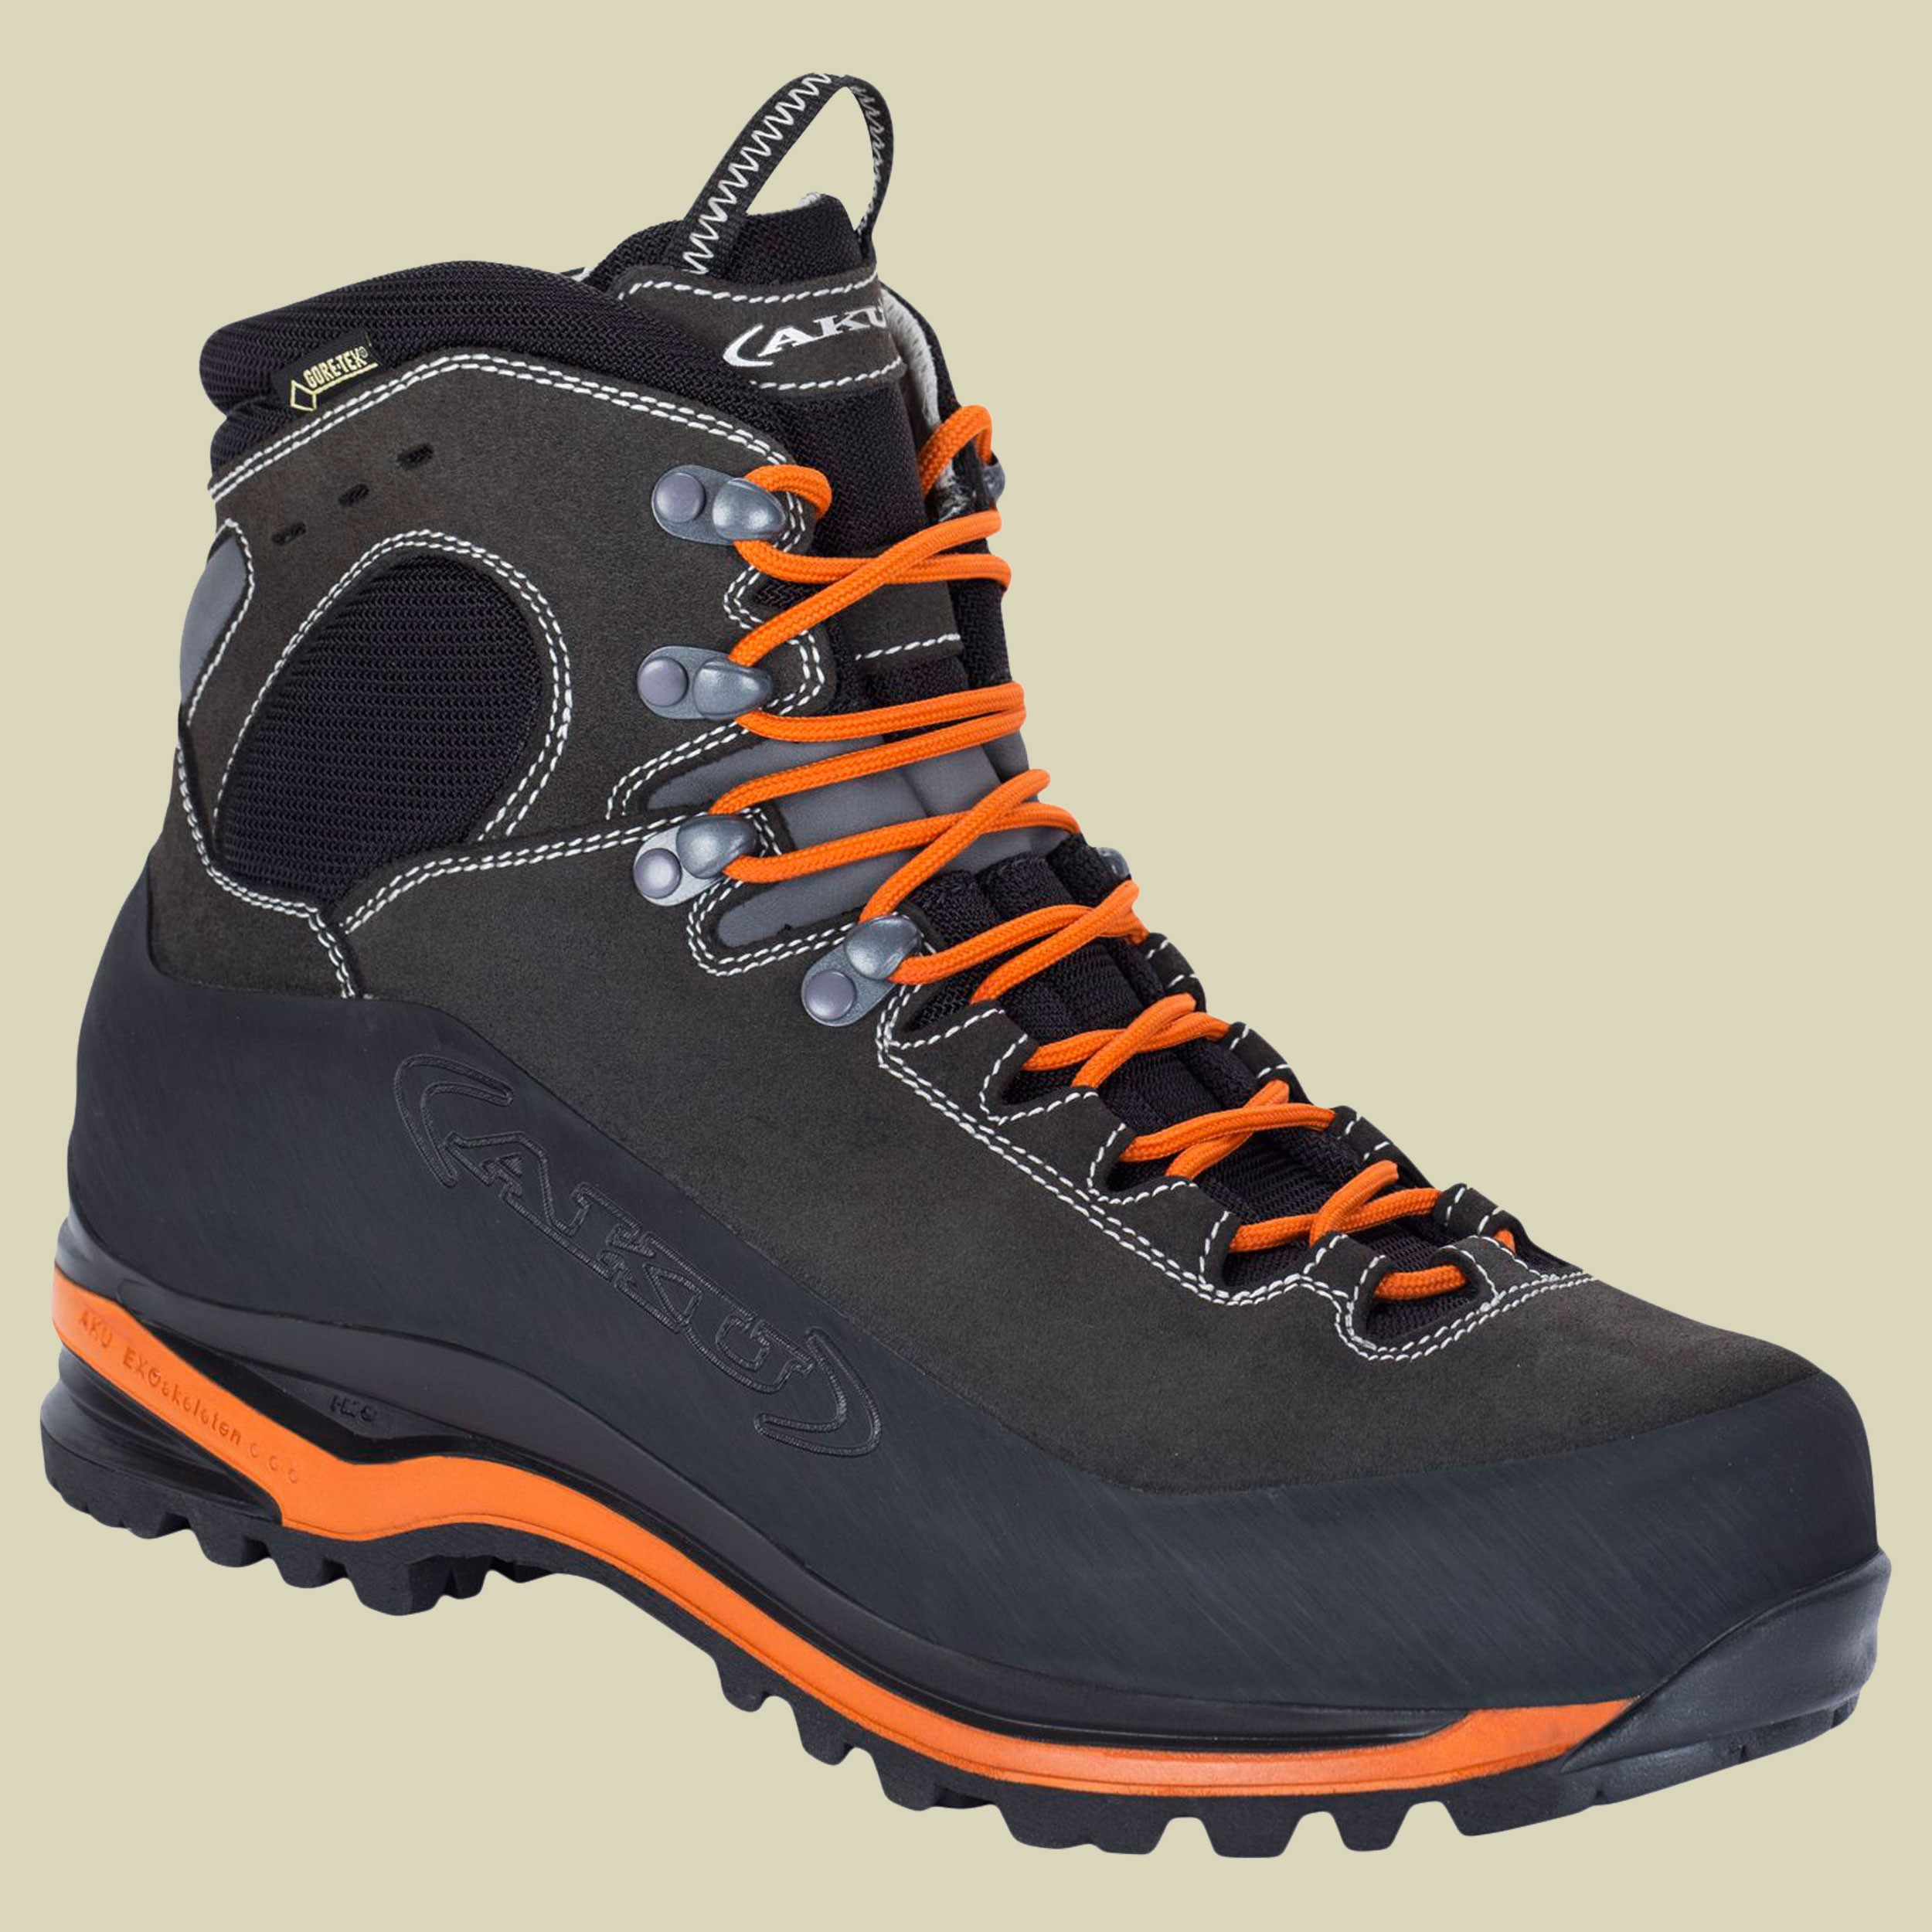 Superalp GTX Men